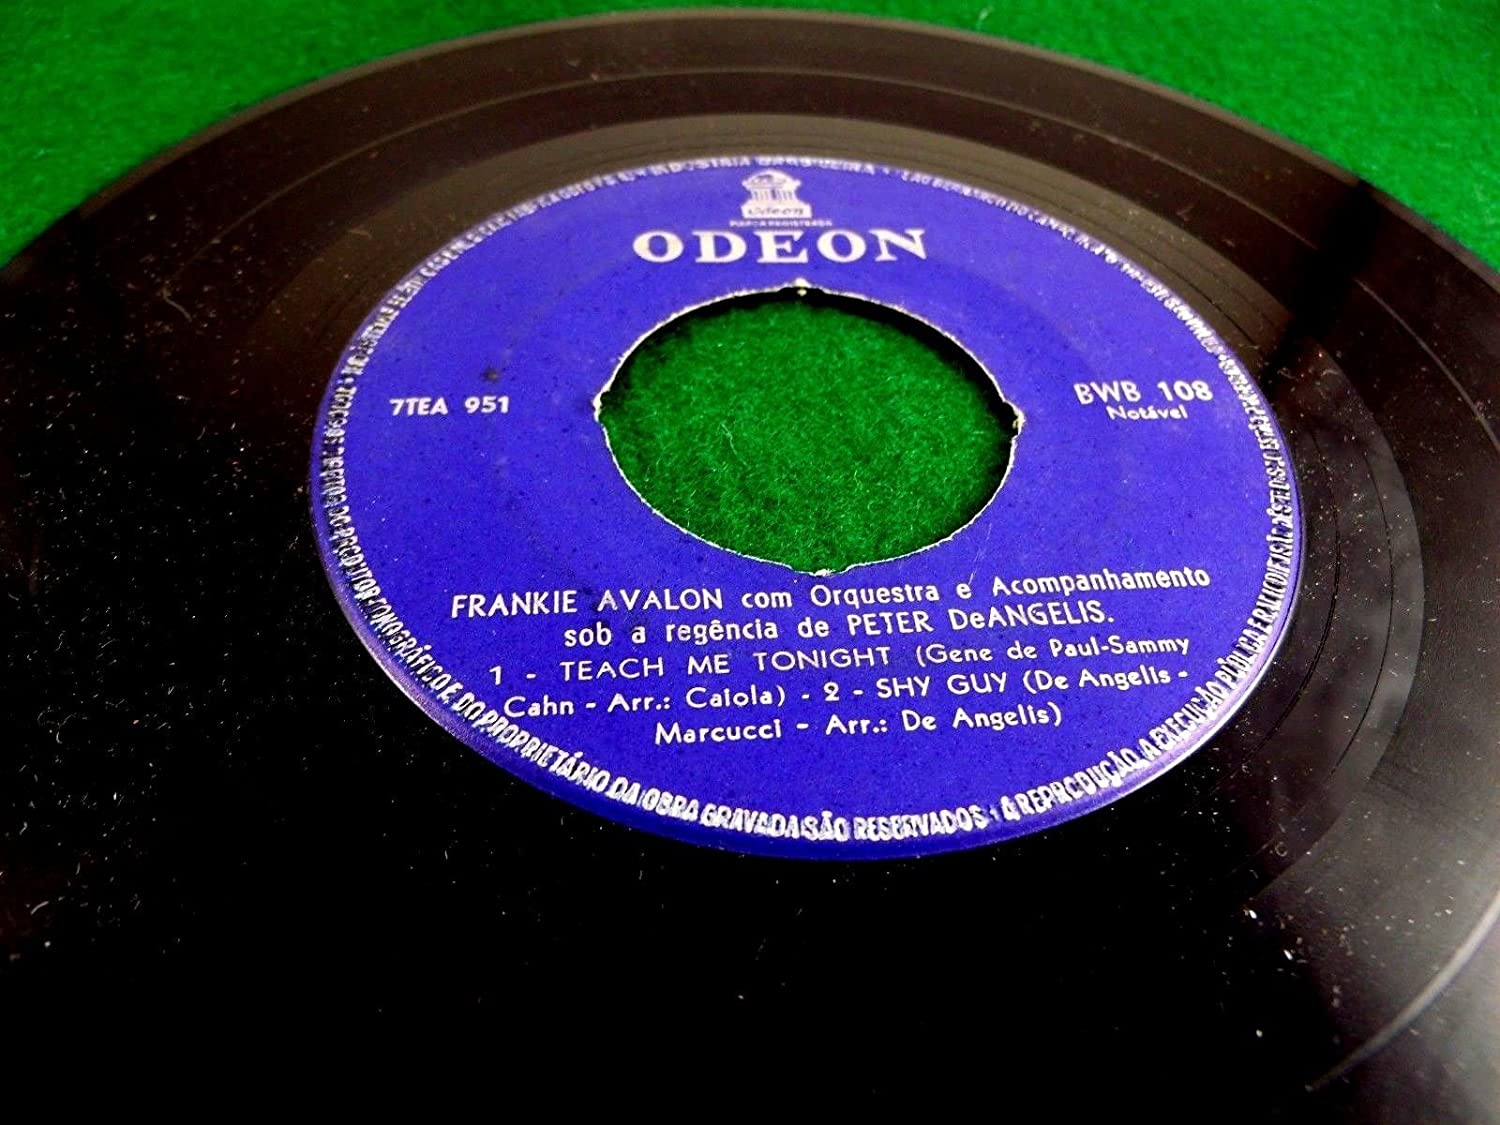 Frankie Avalon - Odeon Brazil Pressed EP -Undecided The One I Love ...